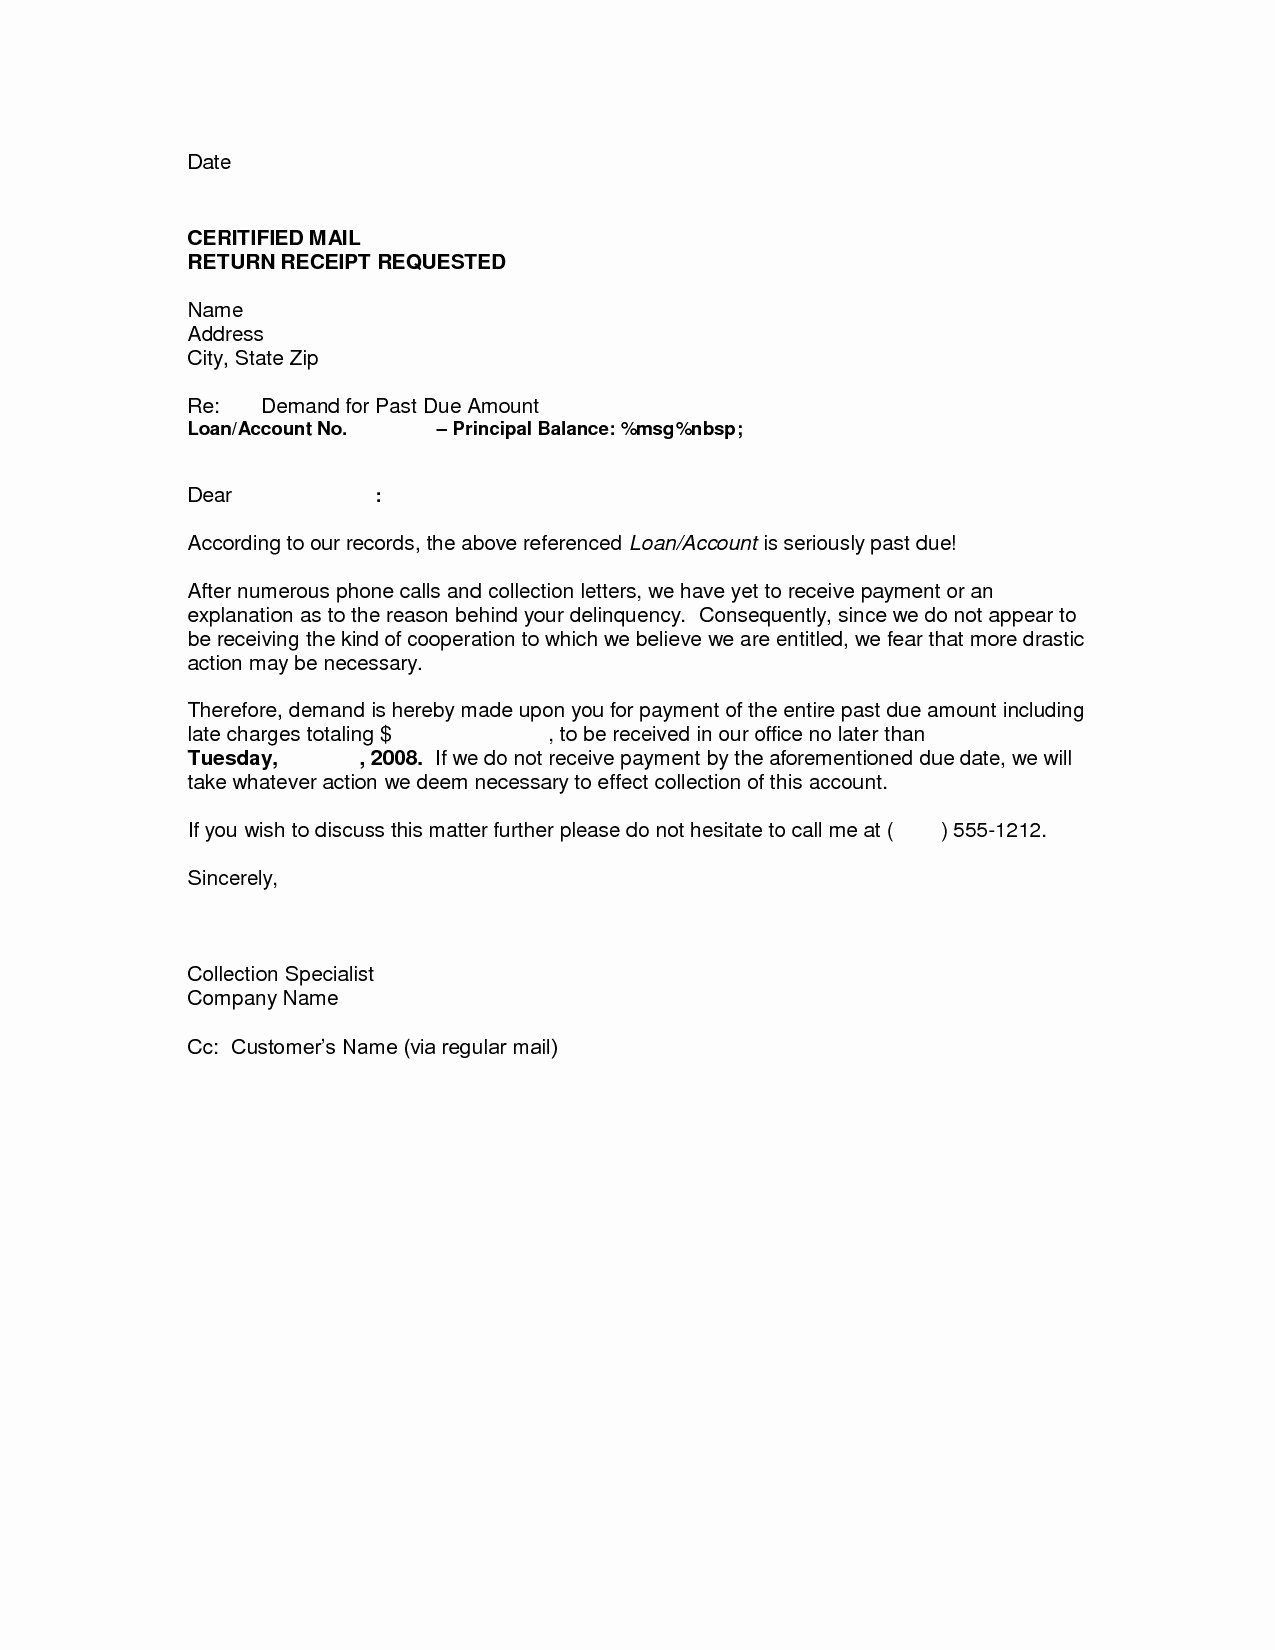 10 Day Payoff Letter Sample Inspirational Demand Letter Template Breach Contract Examples